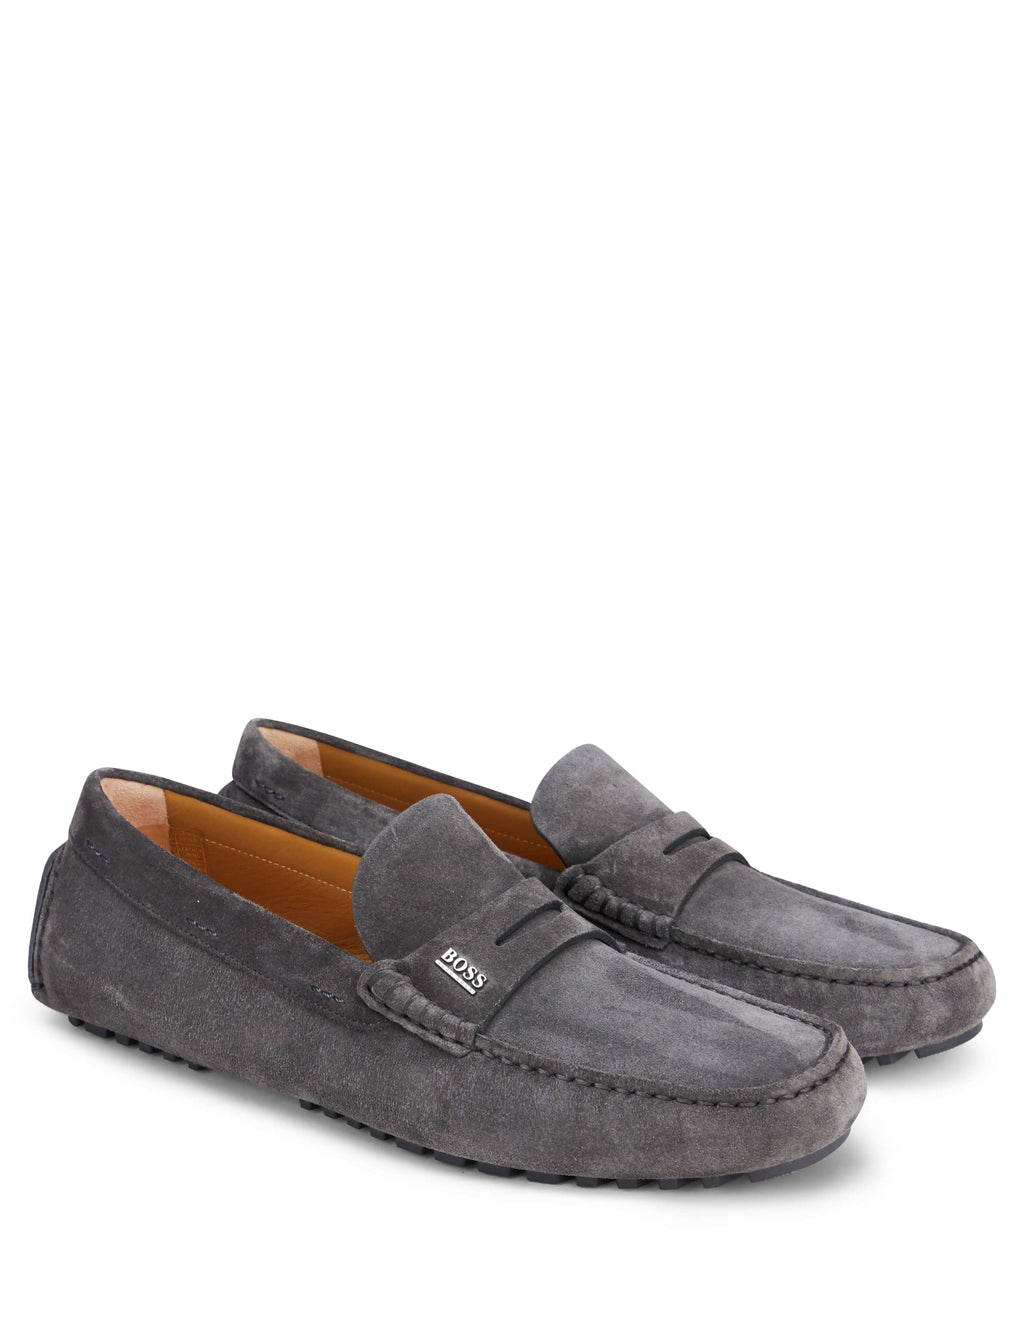 BOSS Hugo Boss Men's Giulio Fashion Grey Suede Moccasin Loafers 50403068022